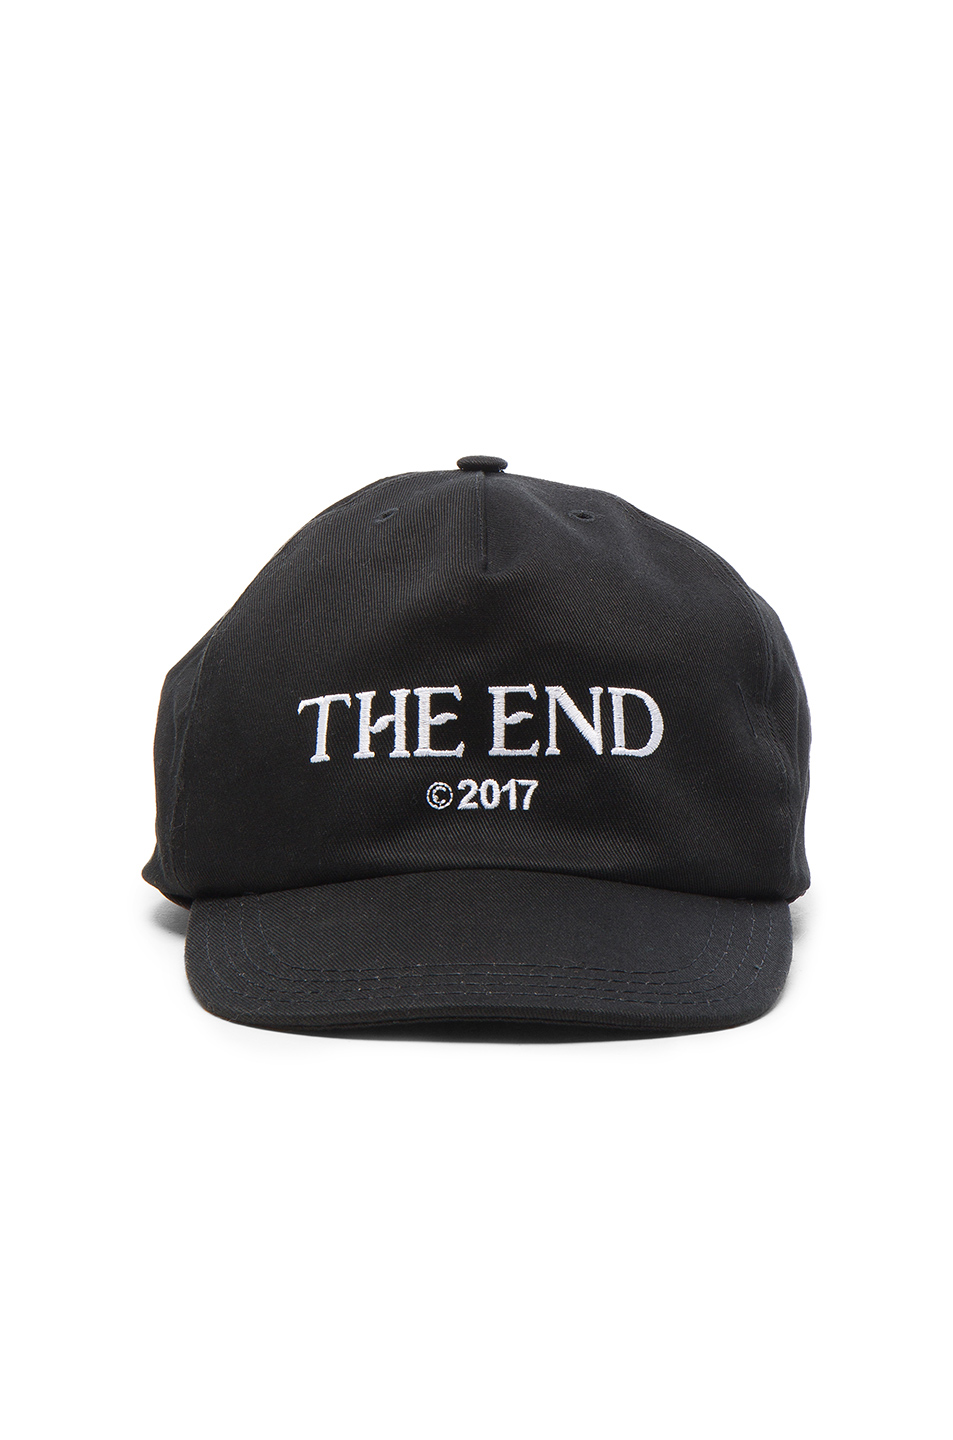 OFF-WHITE The End Cap in Black